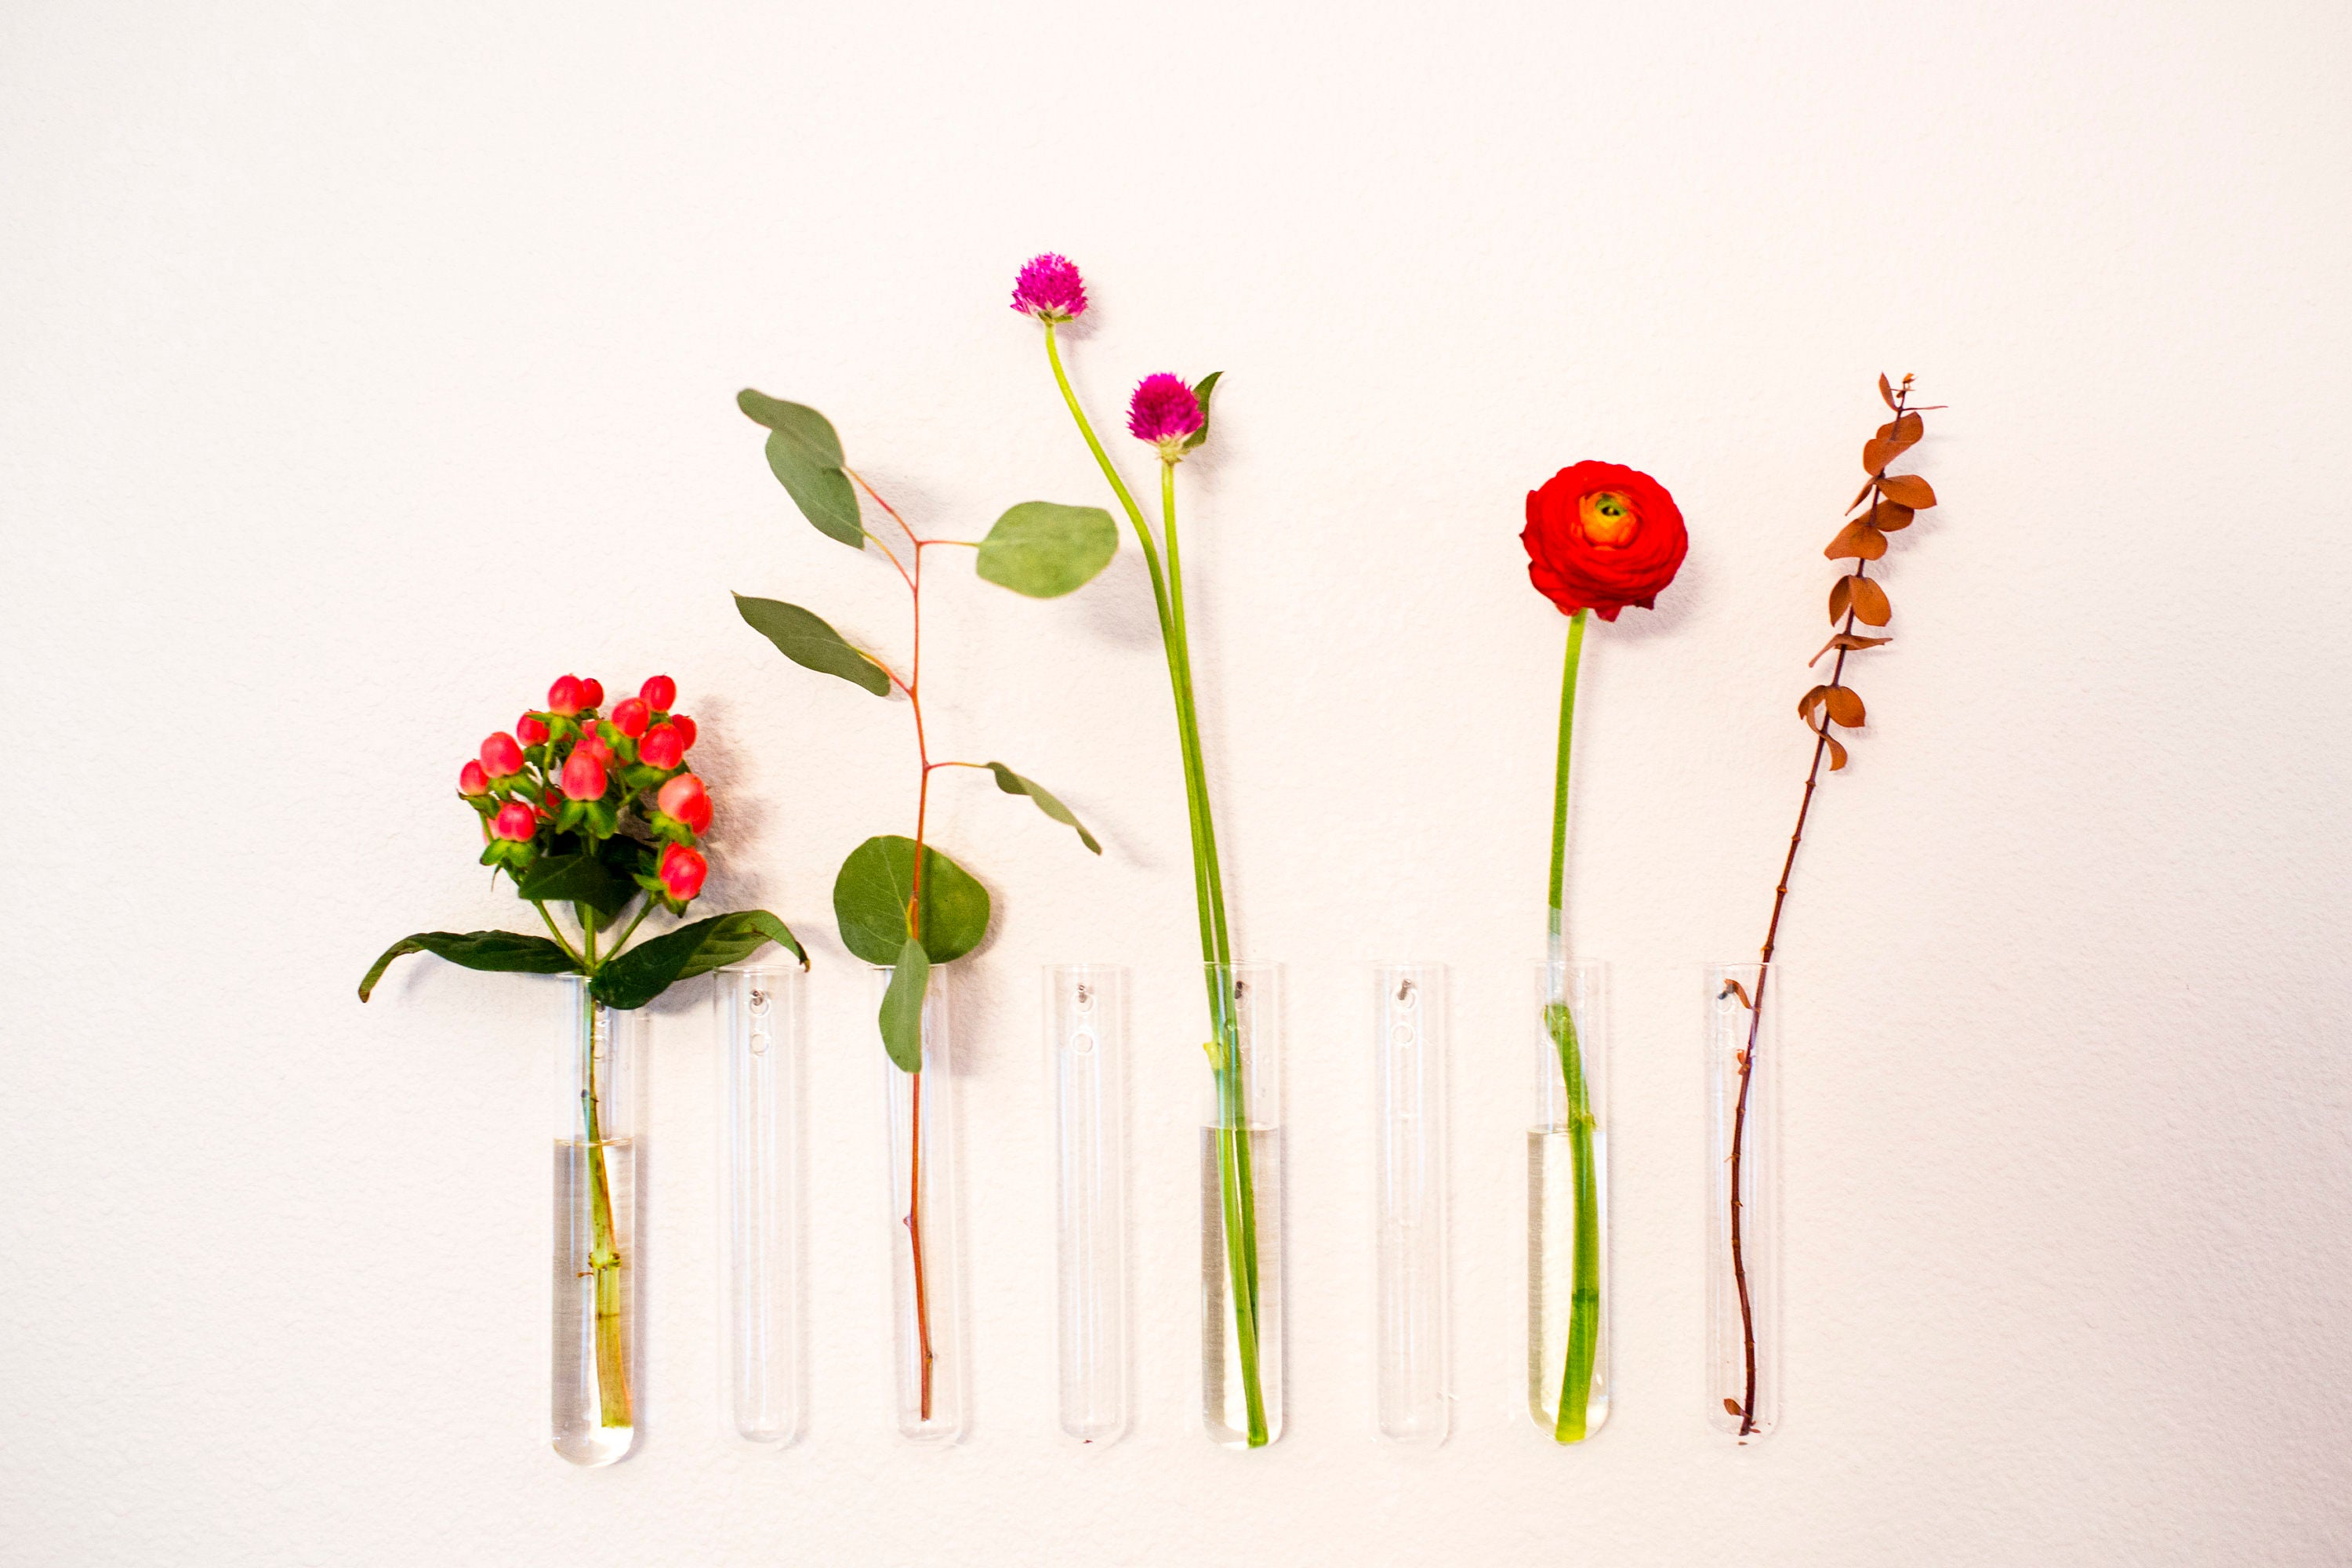 Glass bud vase office decor for women room decor wall bud vase zoom floridaeventfo Gallery